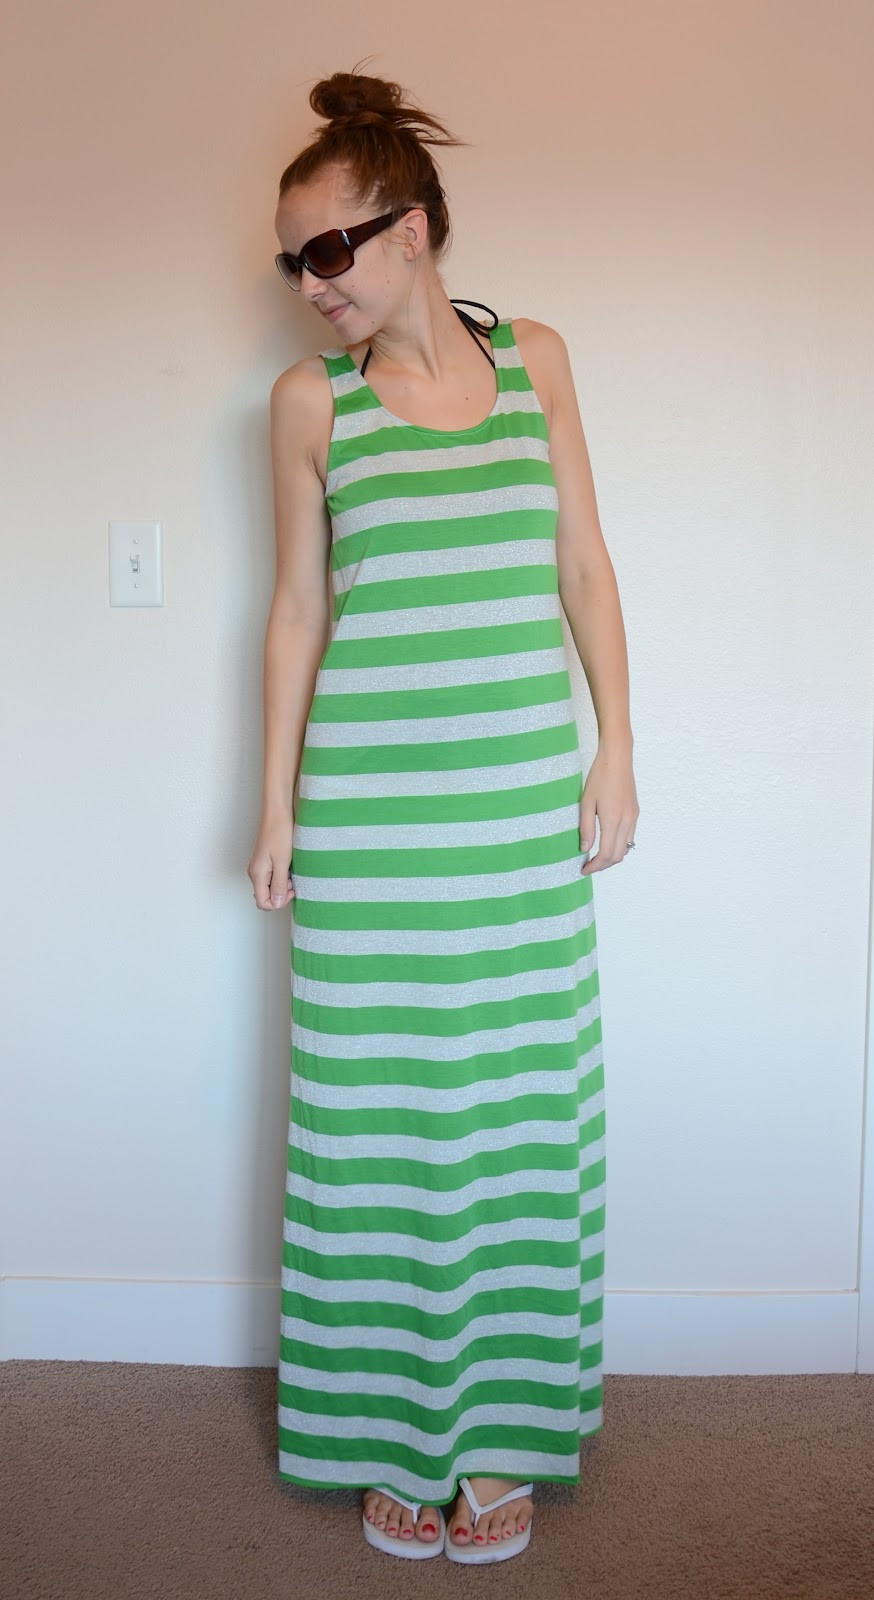 Best ideas about DIY Swimsuit Cover Ups . Save or Pin Merrick s Art Style Sewing for the Everyday Now.